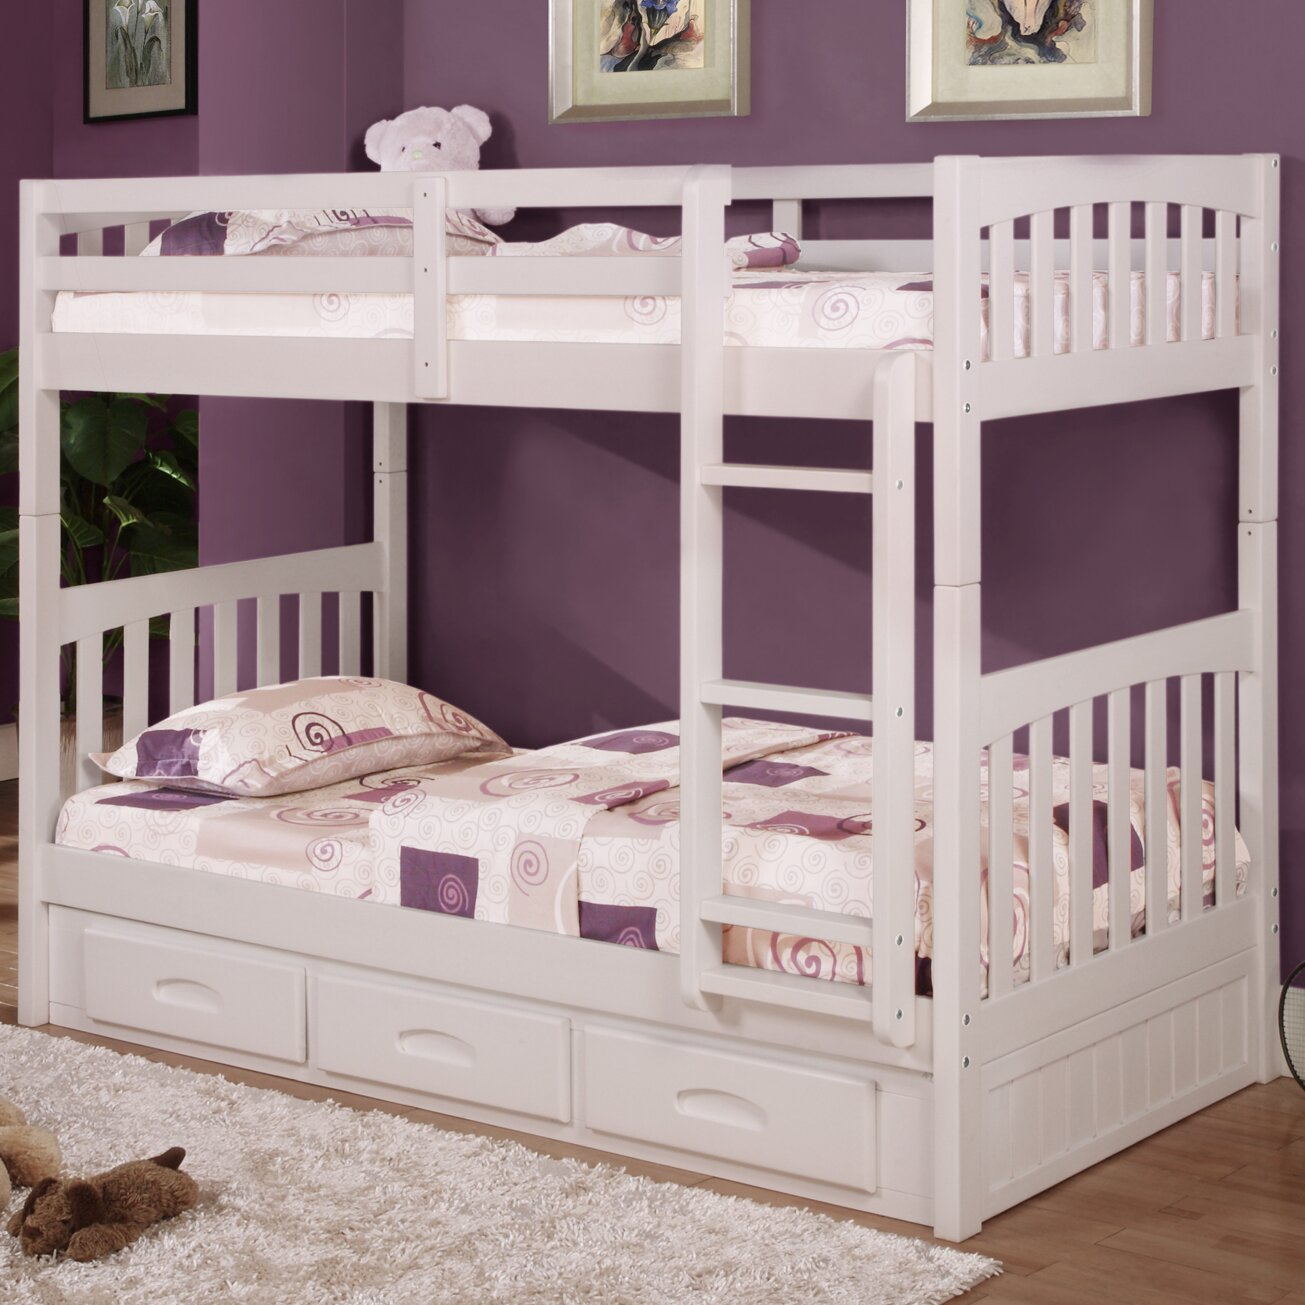 Donco kids mission twin over twin bunk bed with drawers for Kids twin bed with drawers